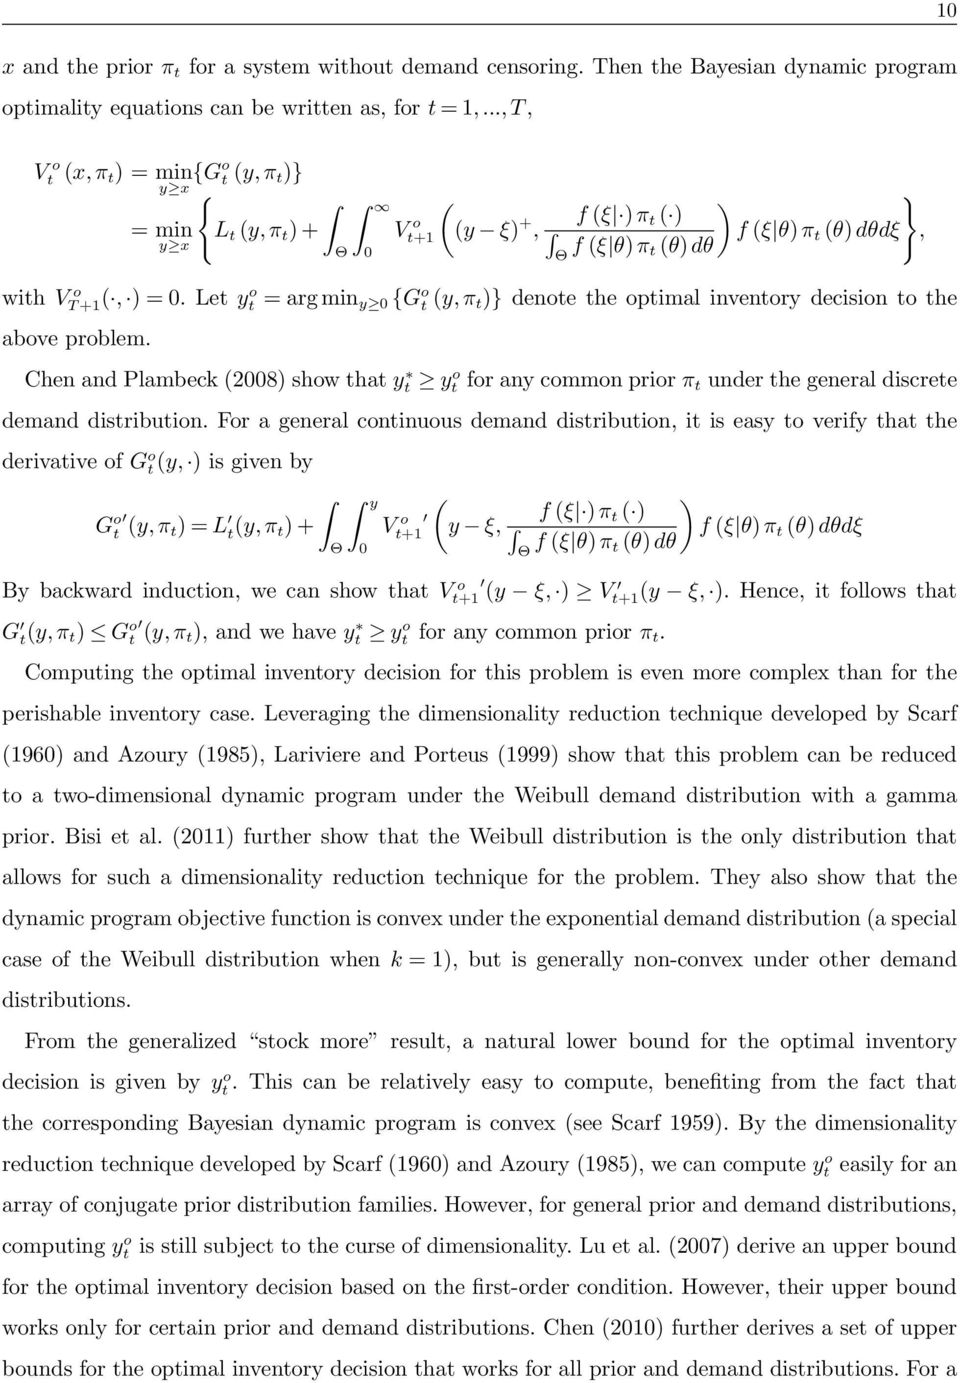 Let y o t = arg min y 0 {G o t (y, π t )} denote the optimal inventory decision to the above problem.